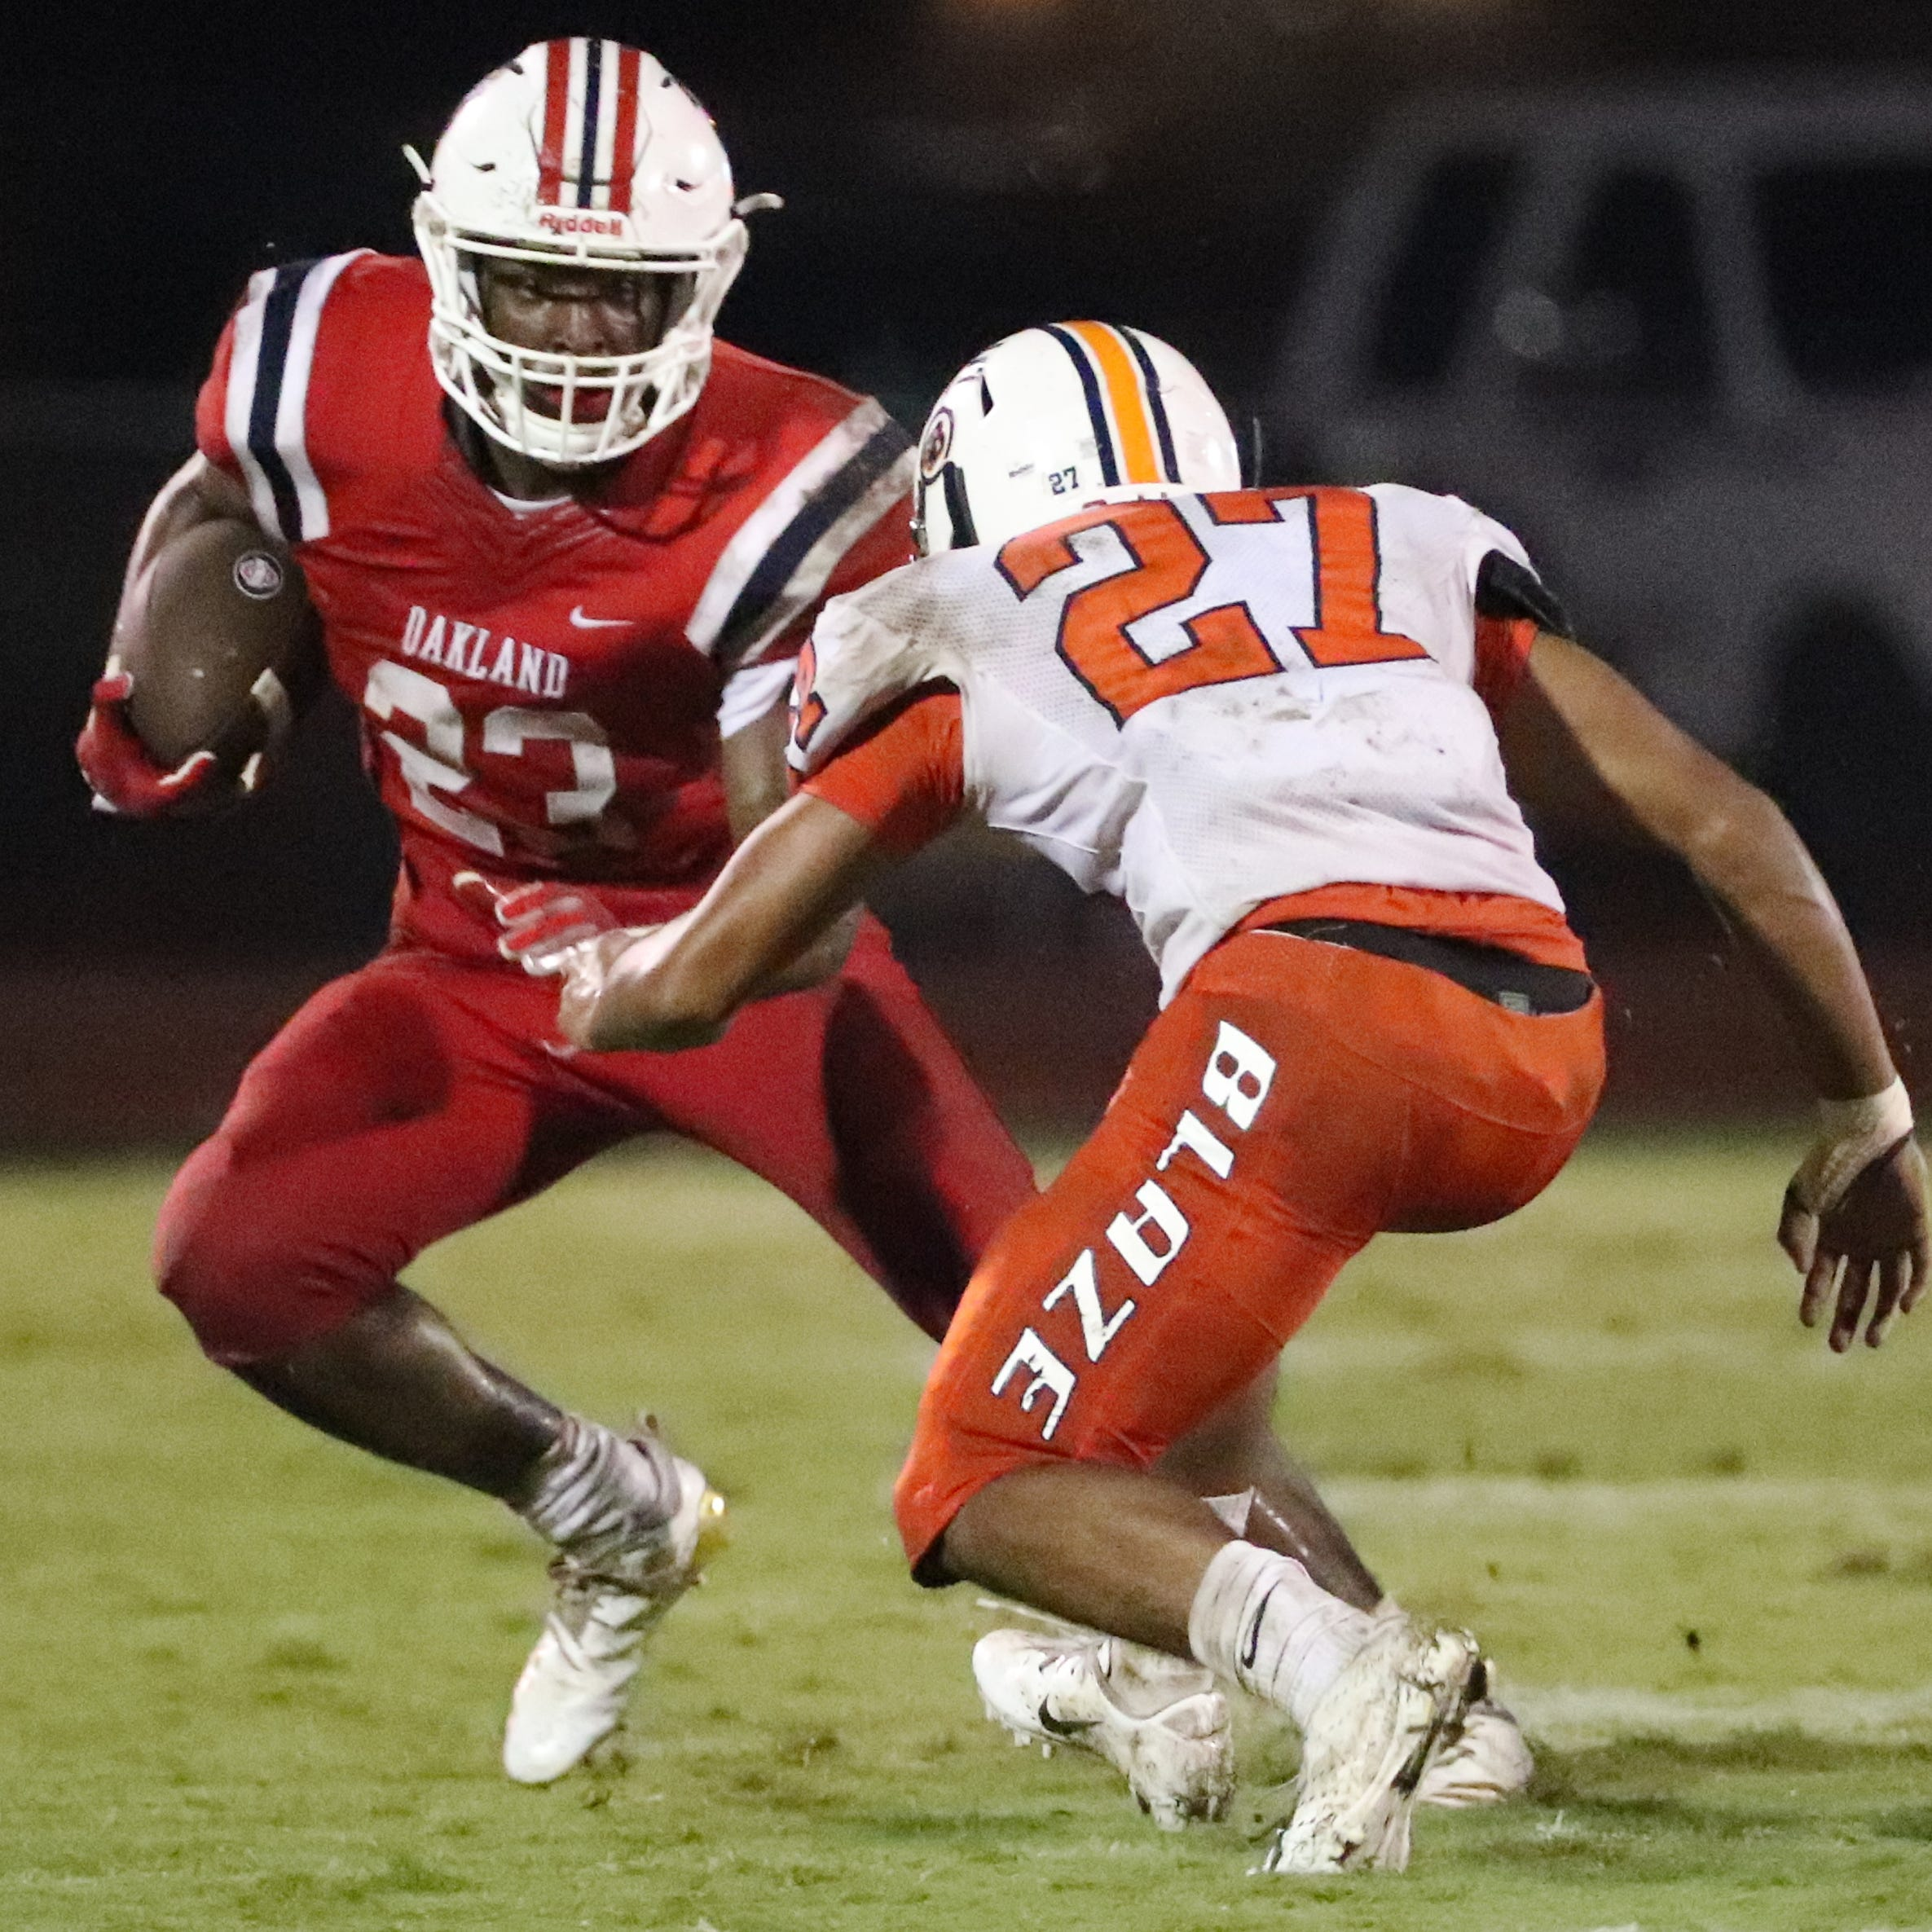 Oakland's BJ Connard (23) runs the ball as Blackman's Jalen Brown (27) moves in for a tackle on Friday, Sept. 21, 2018, at Oakland.